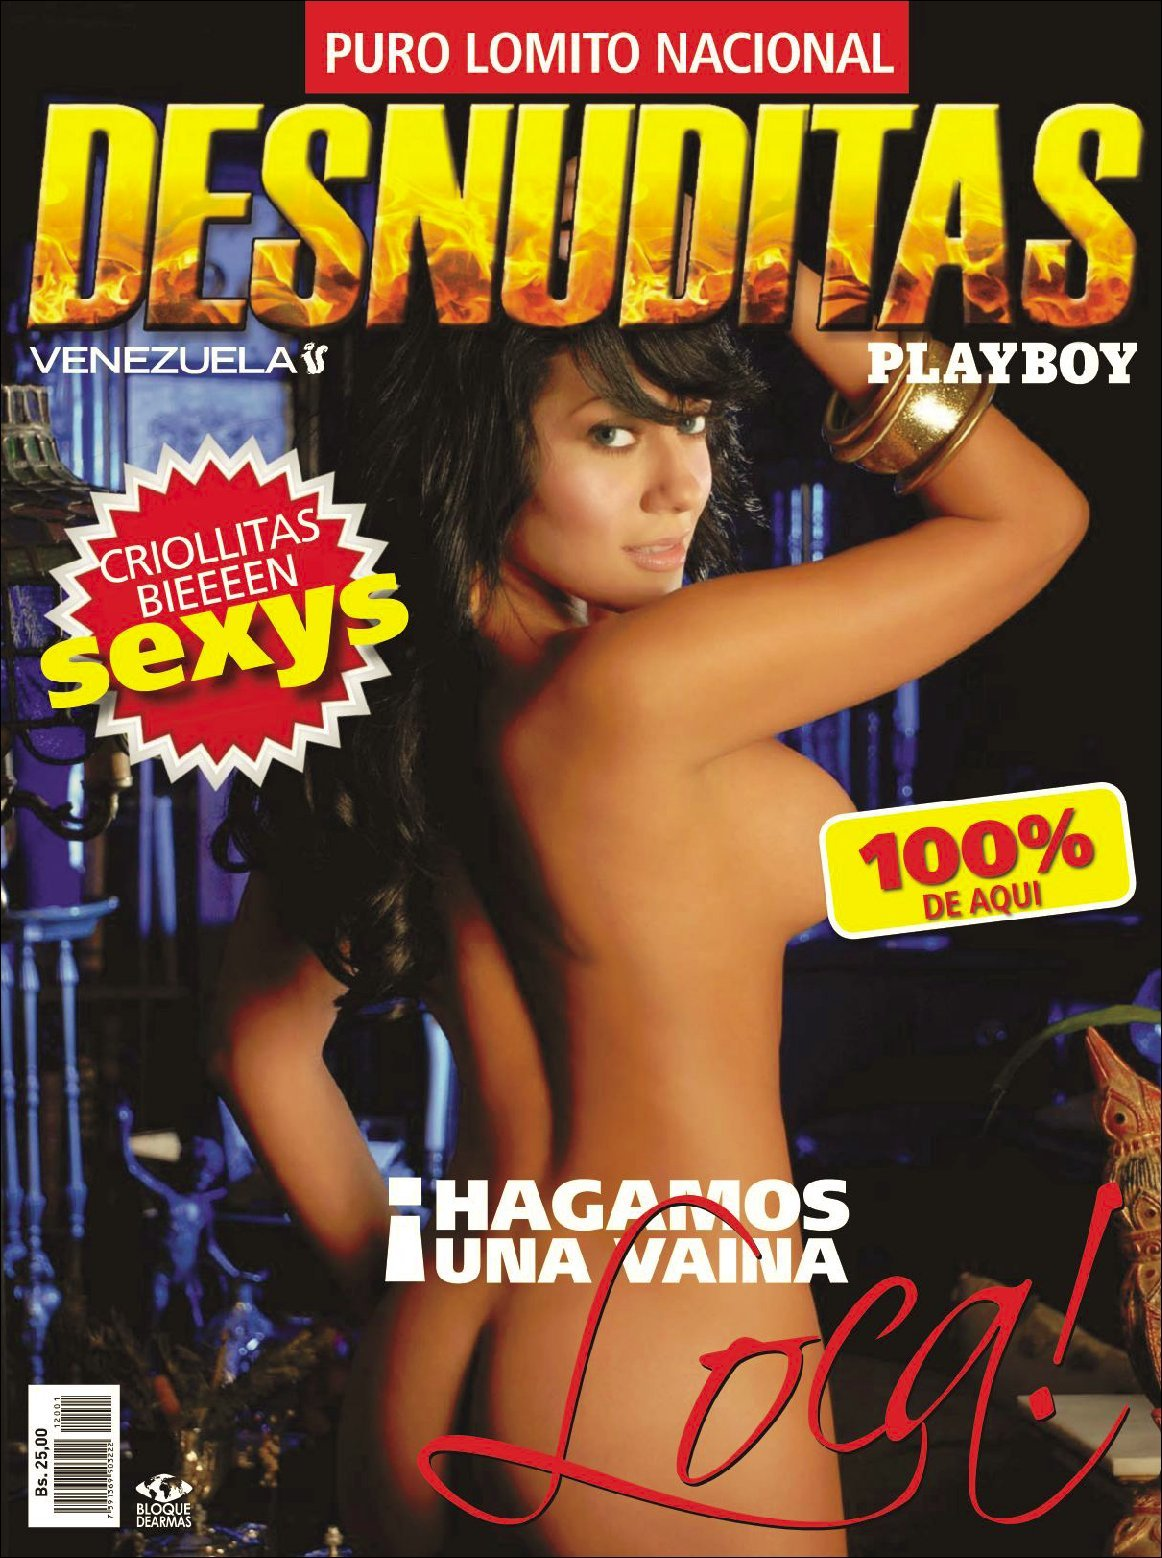 Especiales Playboy Venezuela Digital